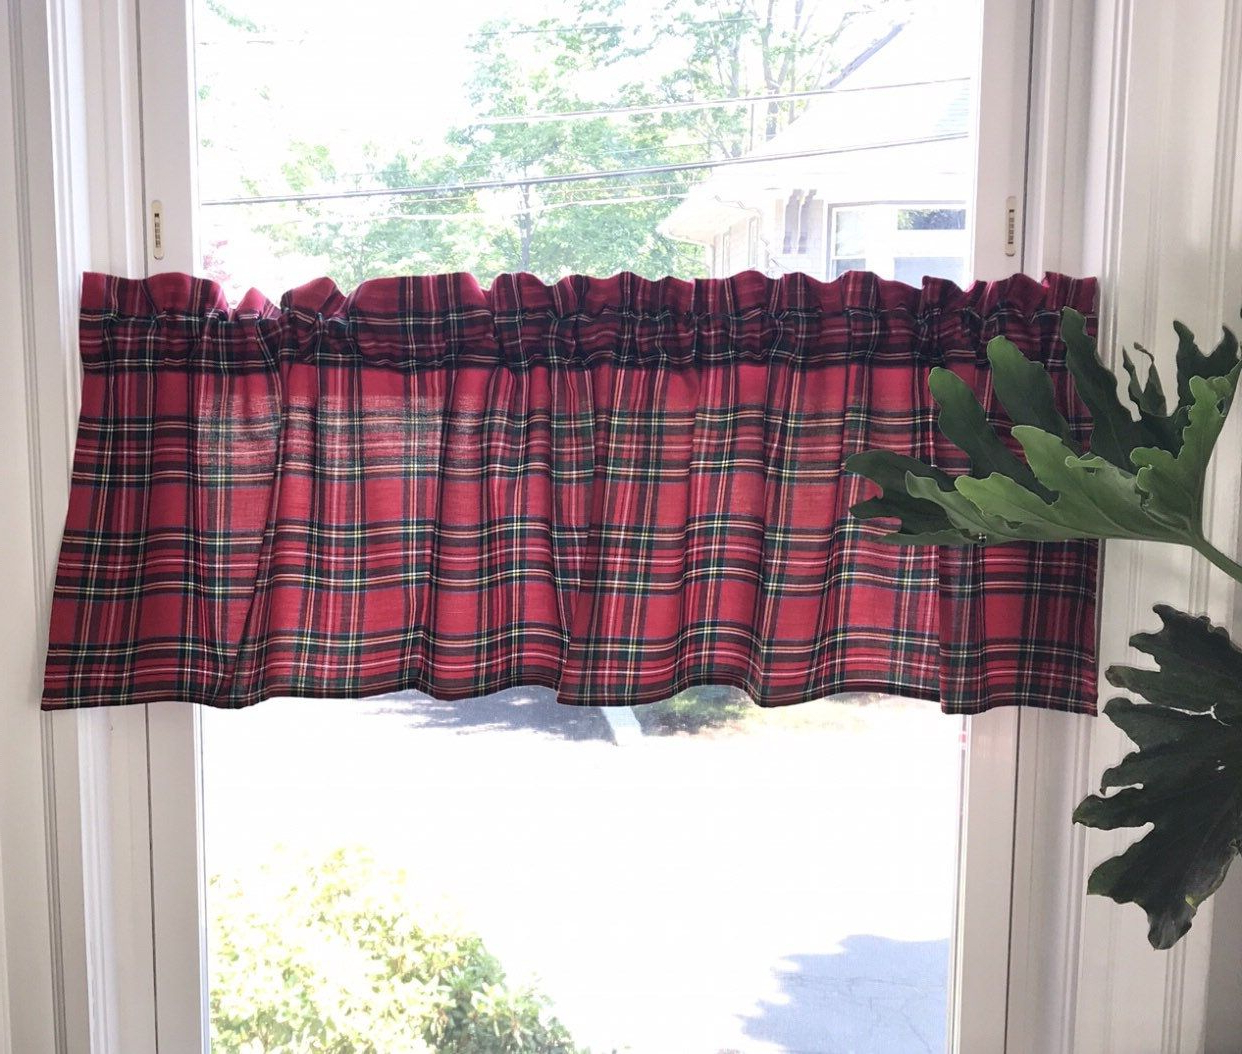 Burgundy Cotton Blend Classic Checkered Decorative Window Curtains Intended For Recent Christmas Royal Stewart Tartan Valance, Red Green Plaid (View 10 of 20)